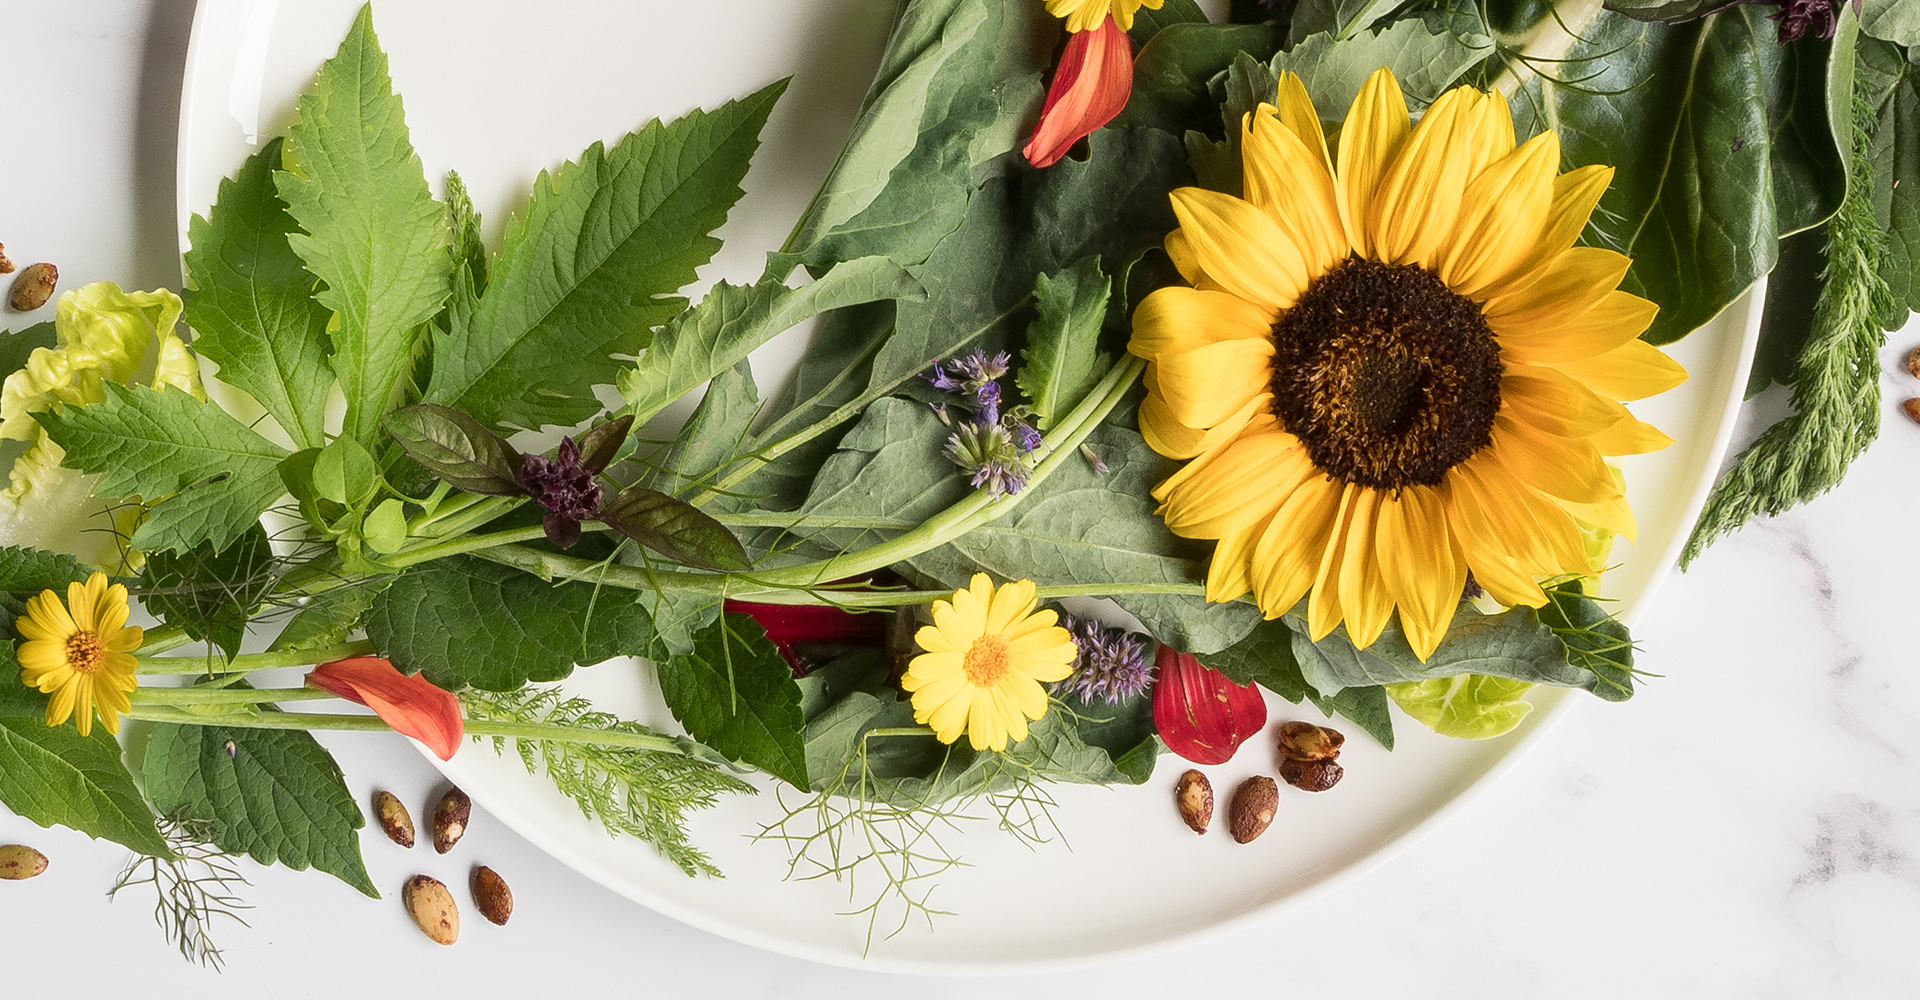 flowers on the plate